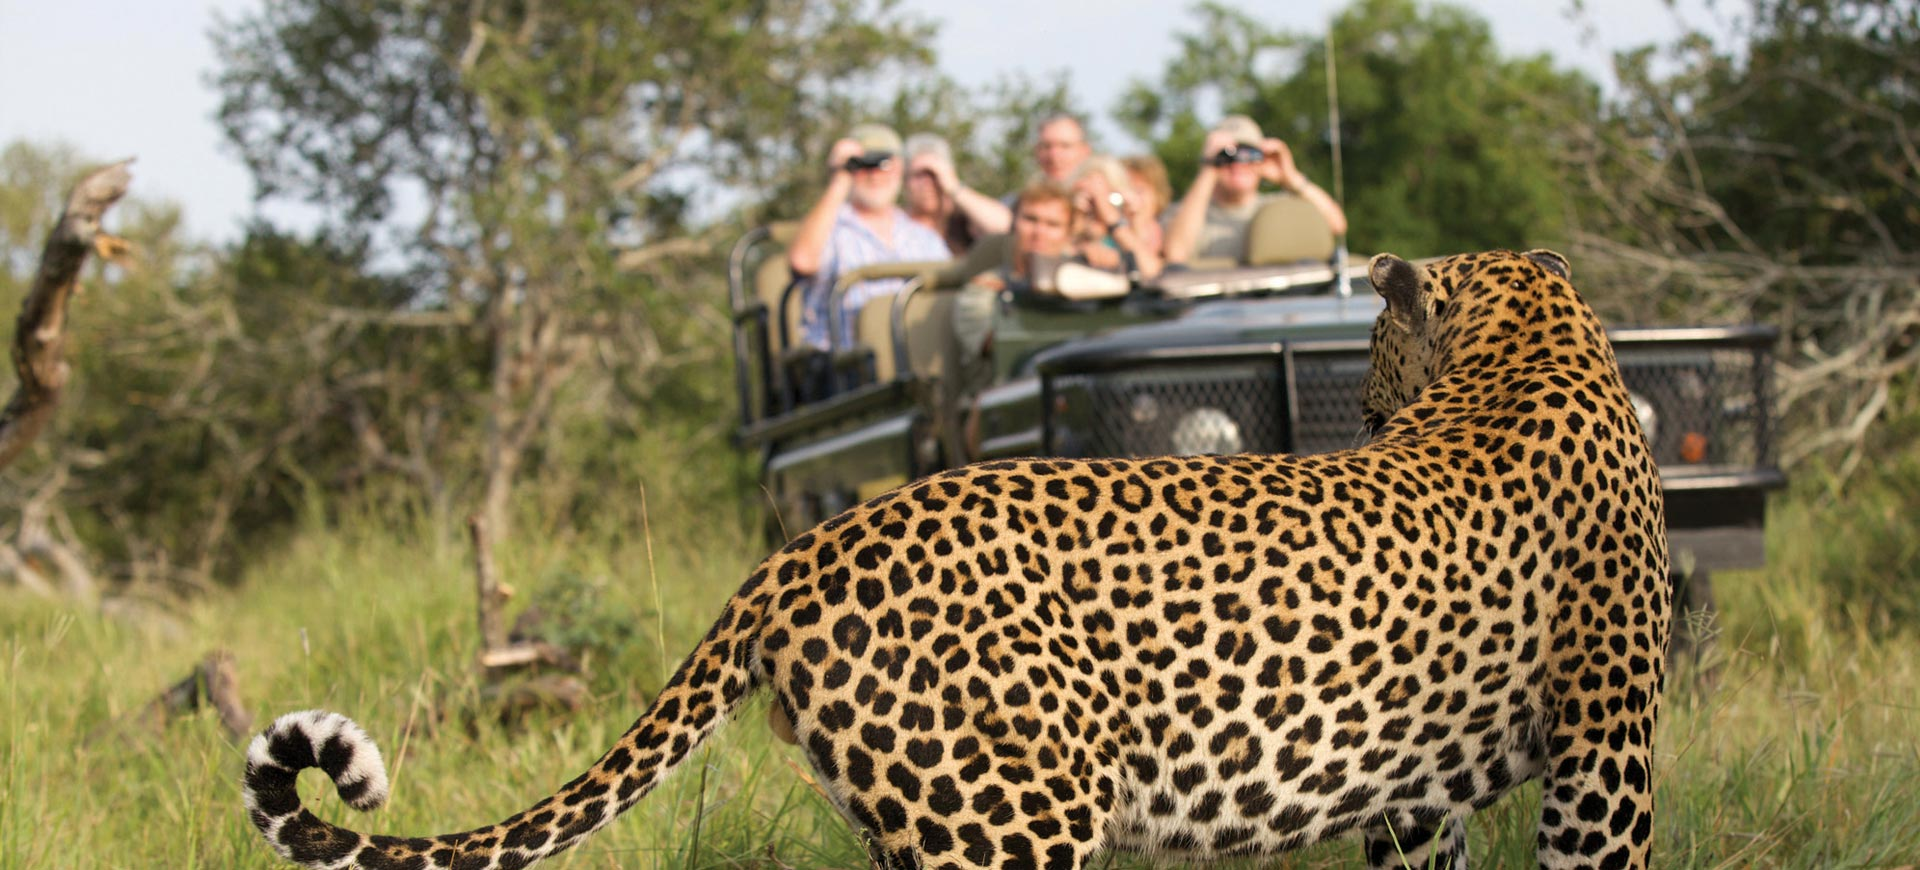 Safari Game Drive Kruger Park